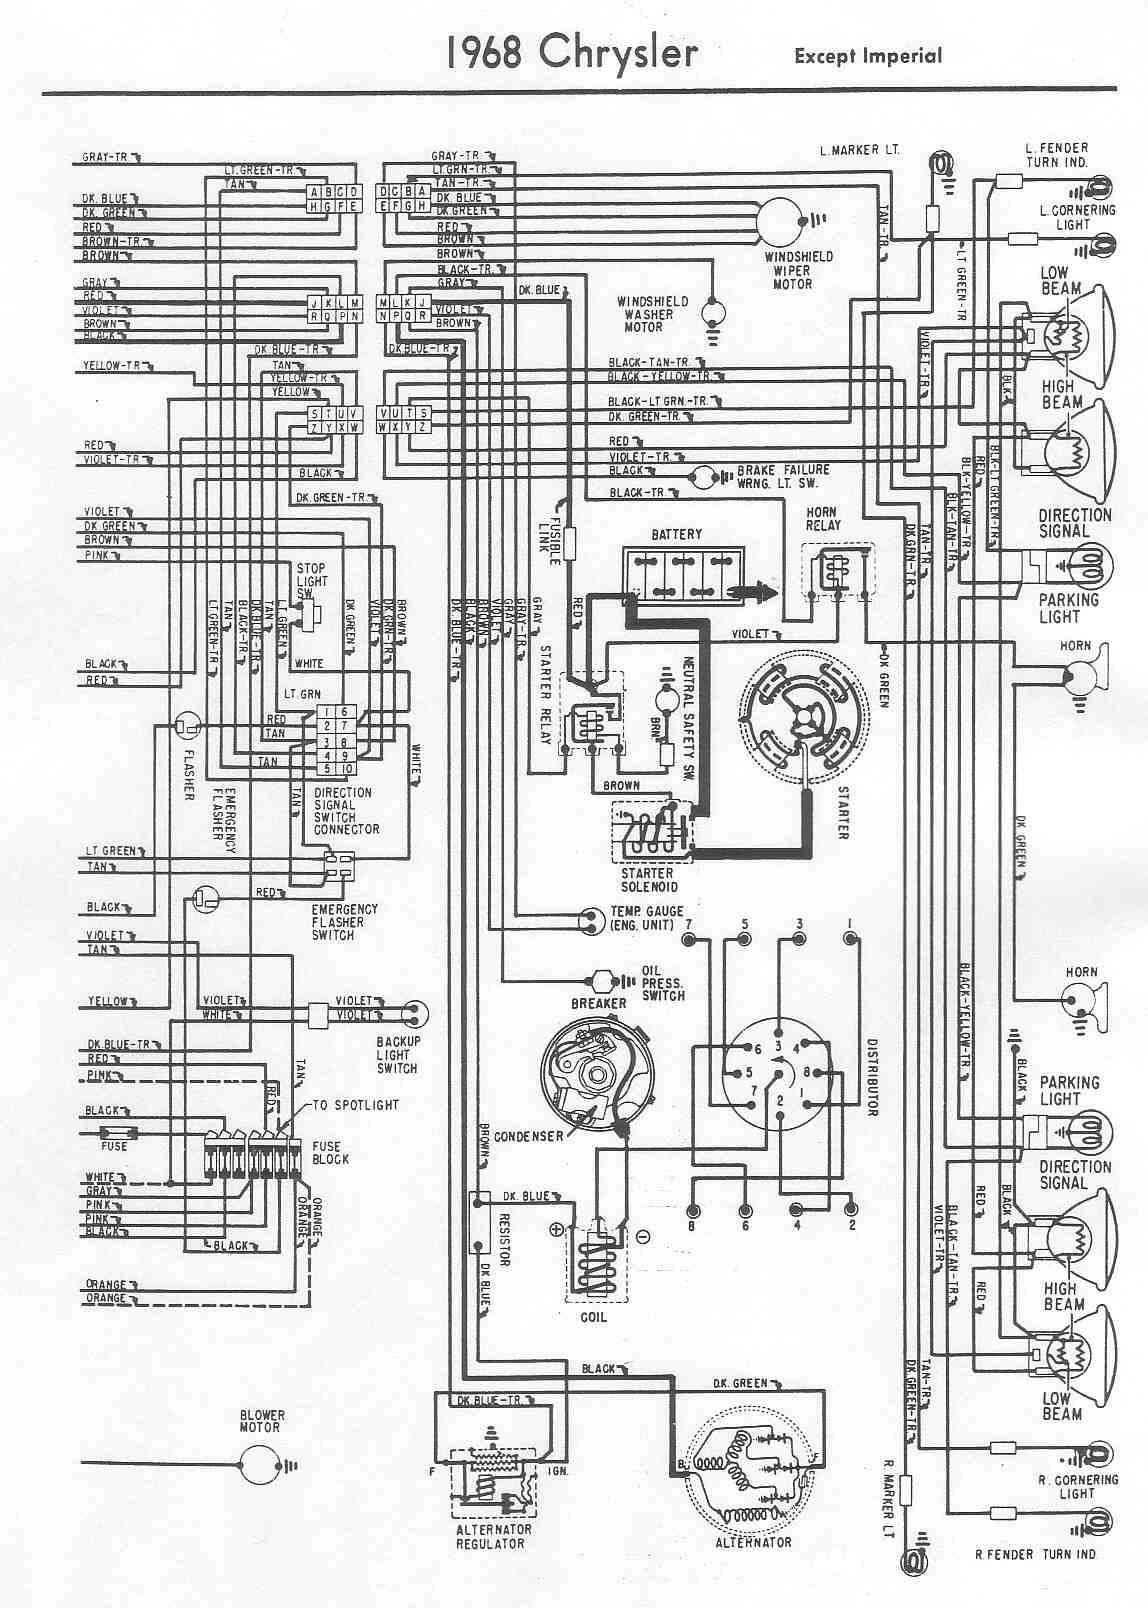 1960 Chevrolet Ignition Wiring Diagram Trusted Diagrams Dodge Chrysler U2022 Freightliner